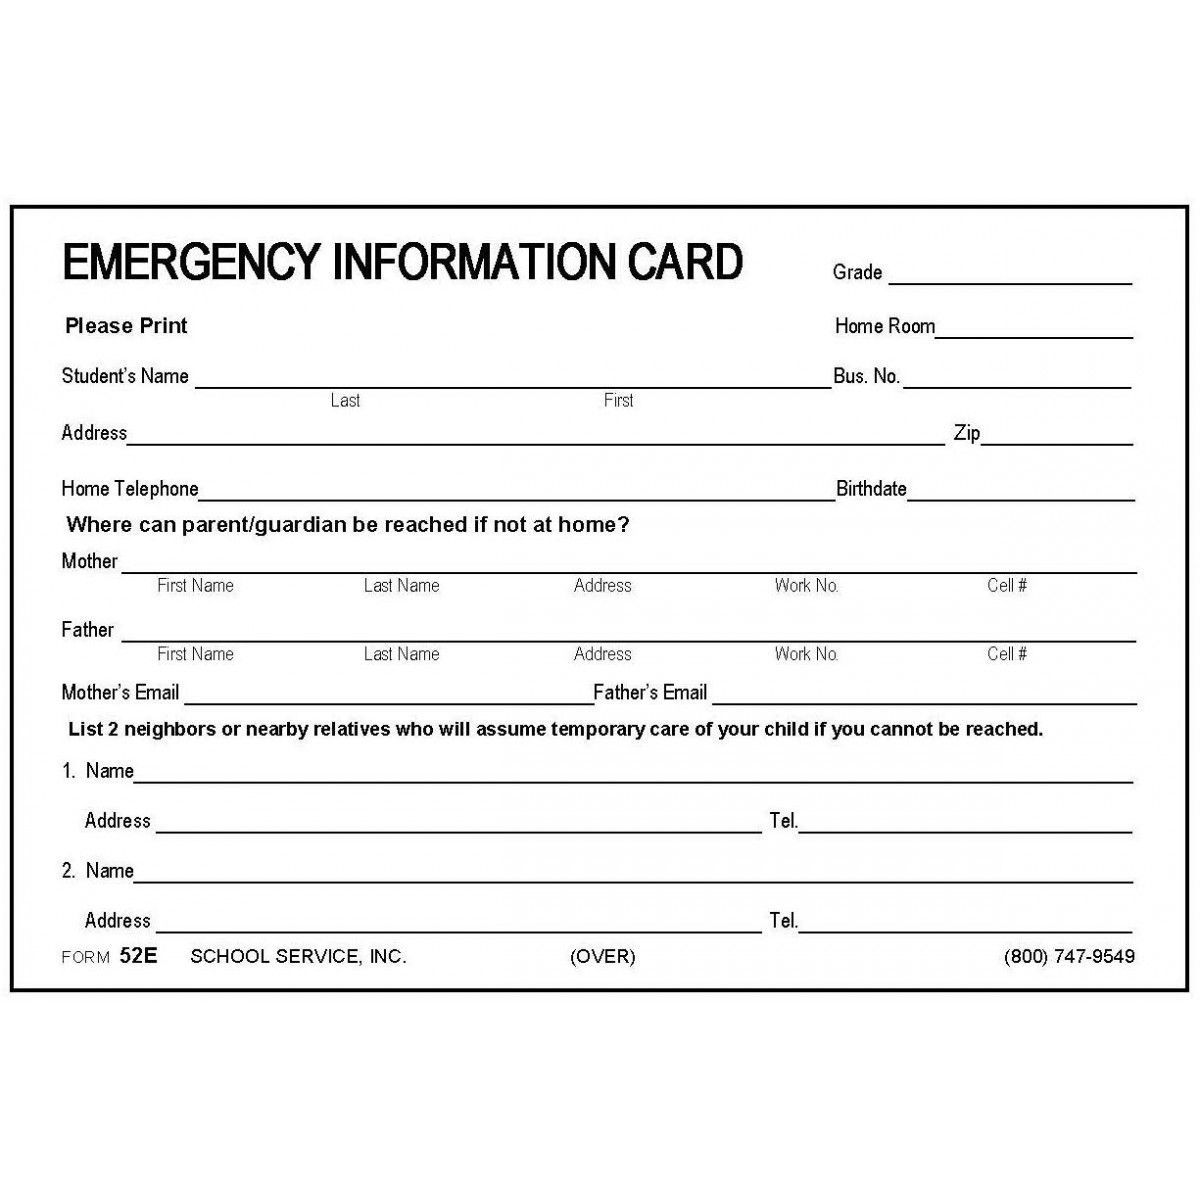 000 Fascinating Emergency Information Card Template High Def  Contact Free For ChildFull